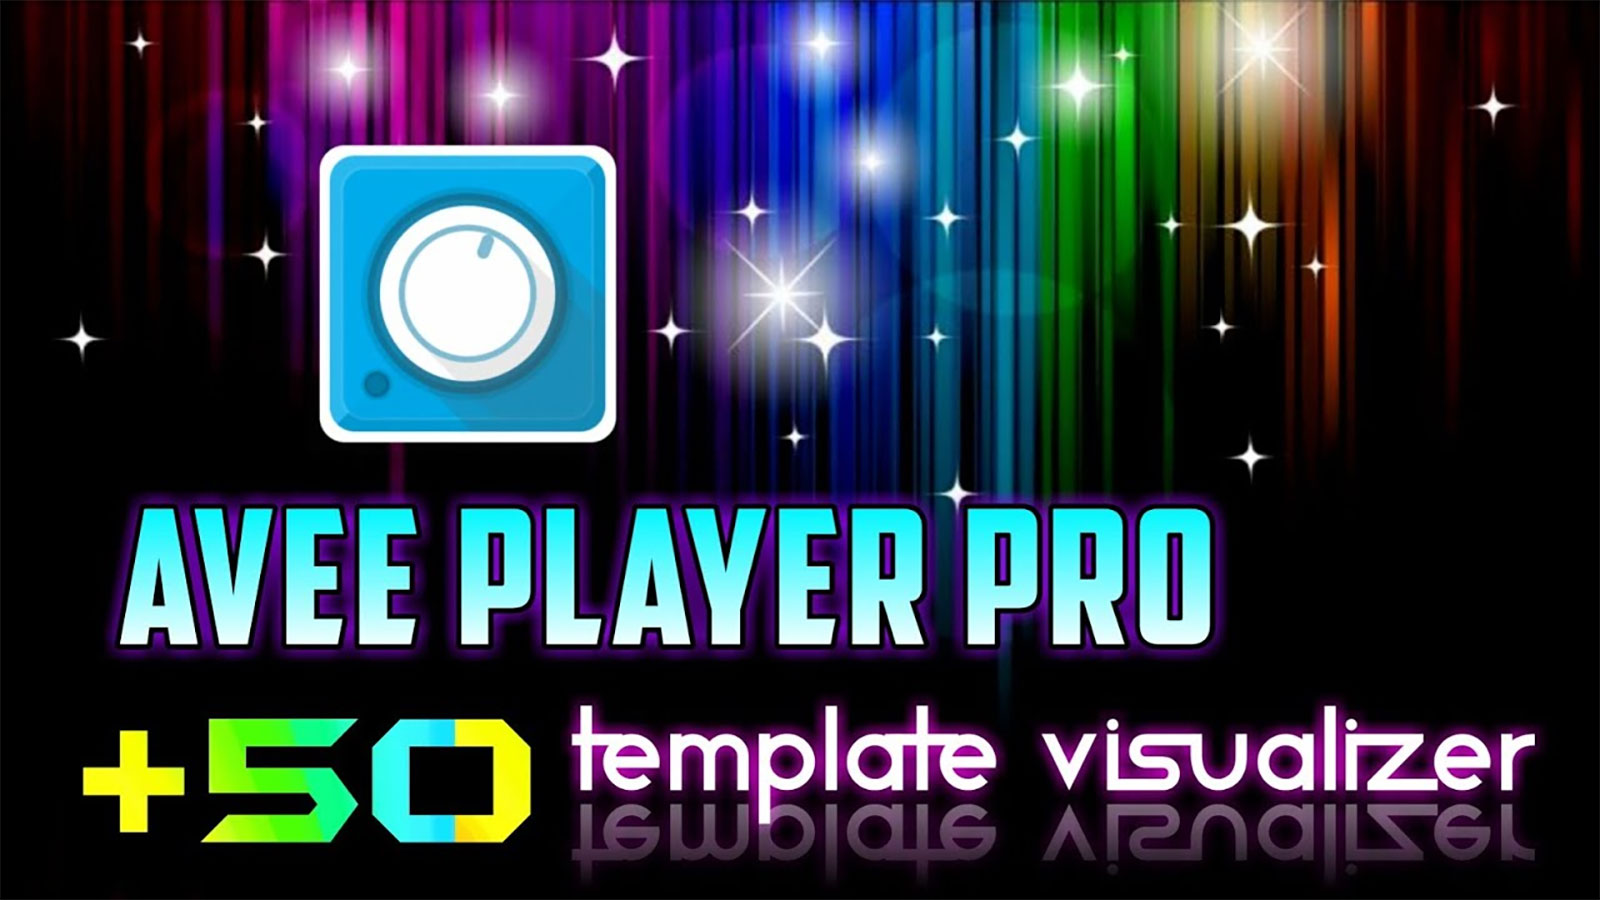 Music Avee Player Pro v1.0.8 (MP3 Player) Paid Apk Mod